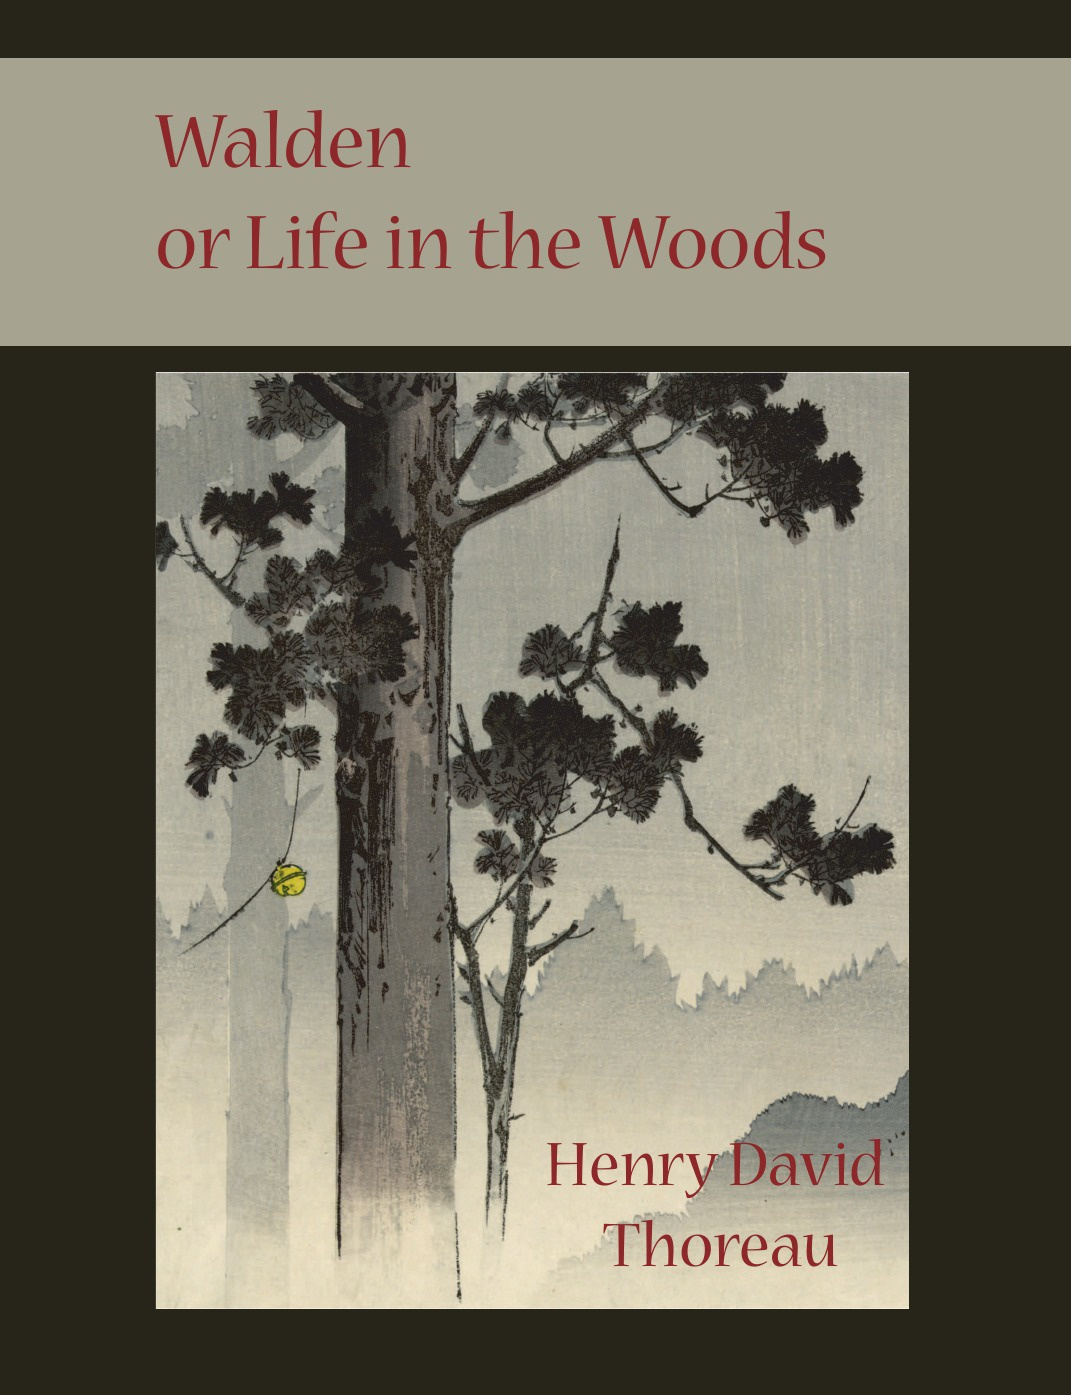 цены на Henry David Thoreau Walden or Life in the Woods  в интернет-магазинах